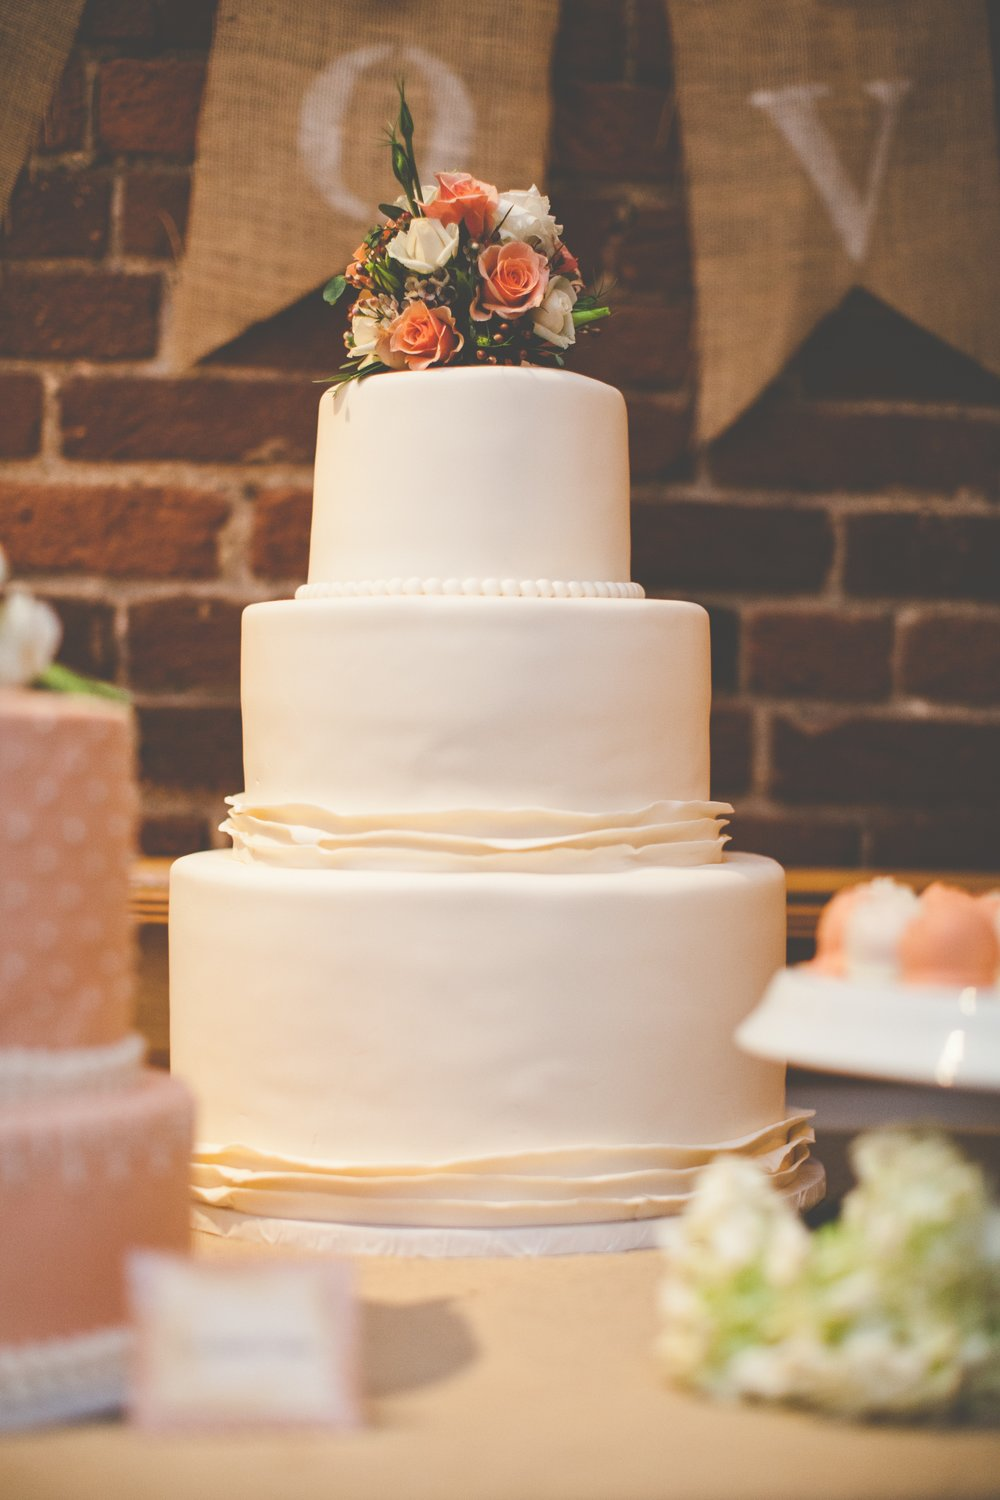 Looking For A Vegan Wedding Cake In Knoxville